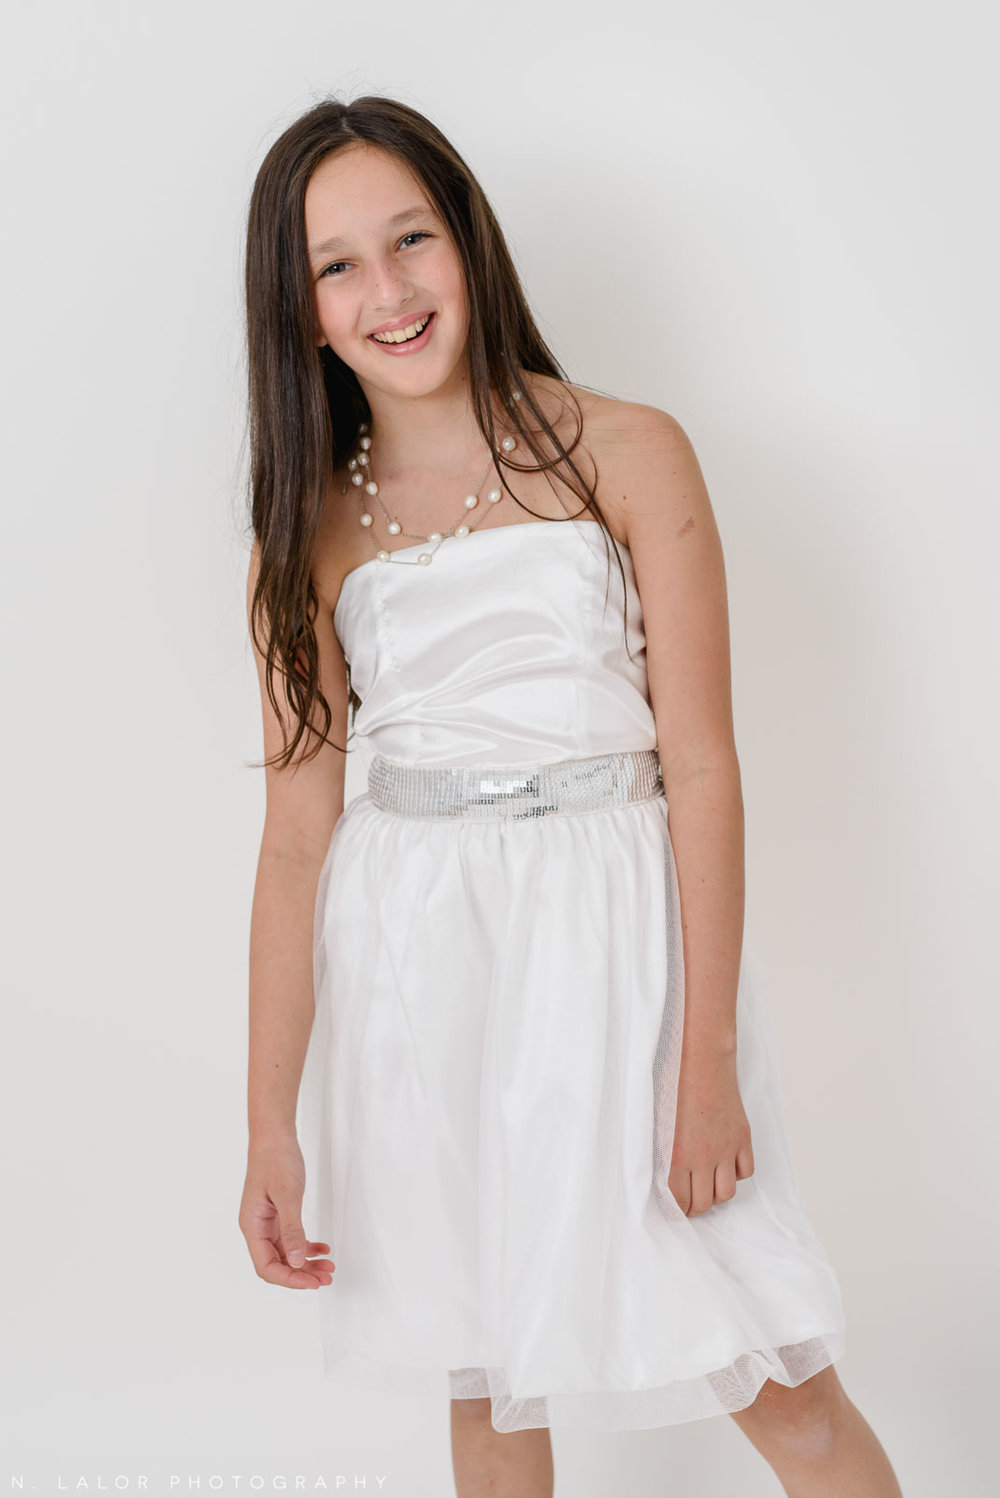 White dress. Stella M'Lia tween fashion photoshoot with N. Lalor Photography in Greenwich, Connecticut.